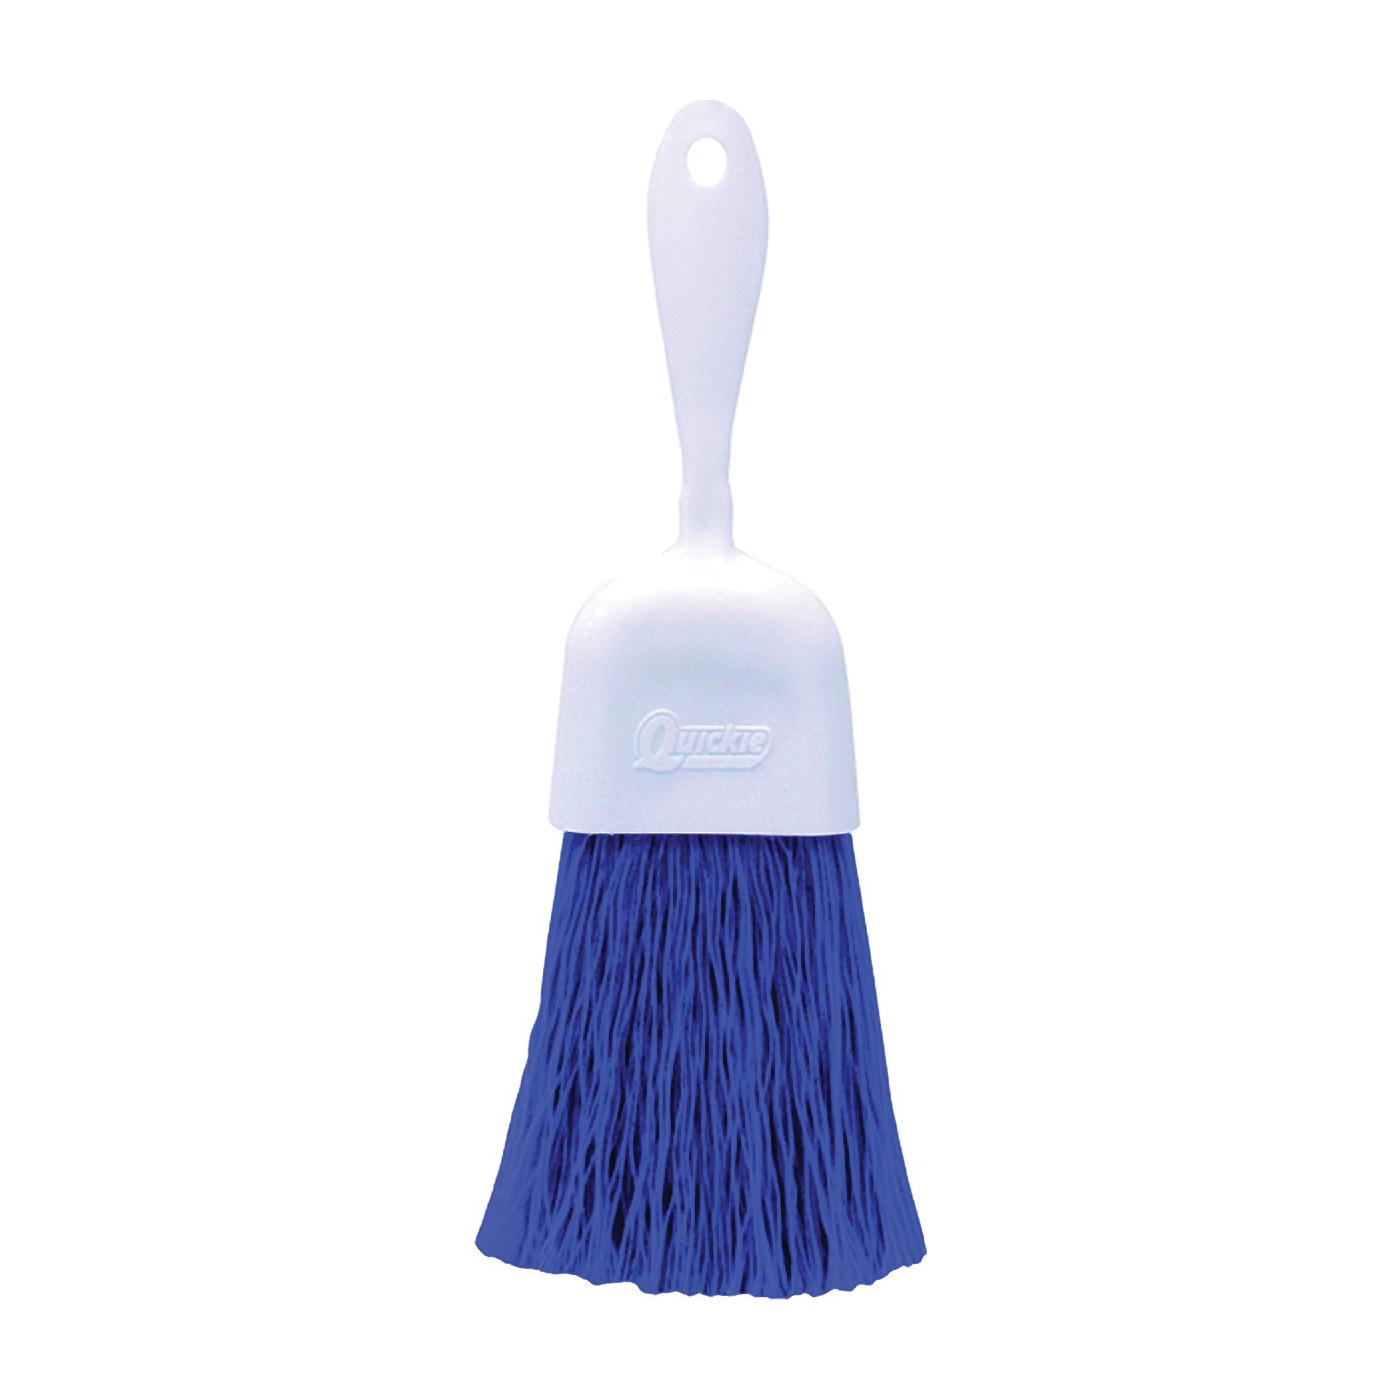 Picture of Quickie 404CQ Whisk Broom, Poly Fiber Bristle, 10-1/2 in OAL, Plastic Handle